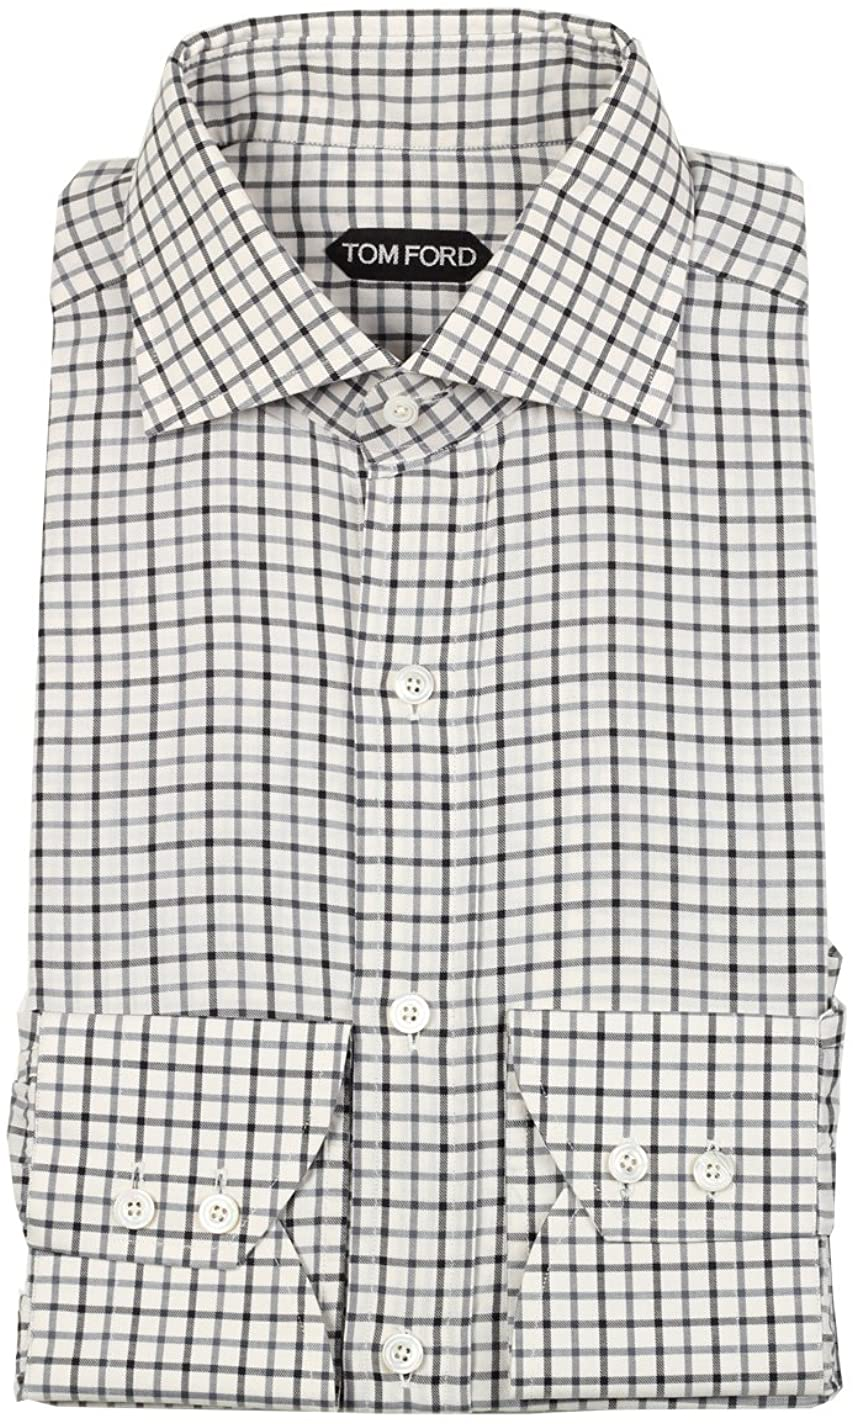 Tom Ford CL Checked White Blue Shirt Size 39/15,5 U.S.